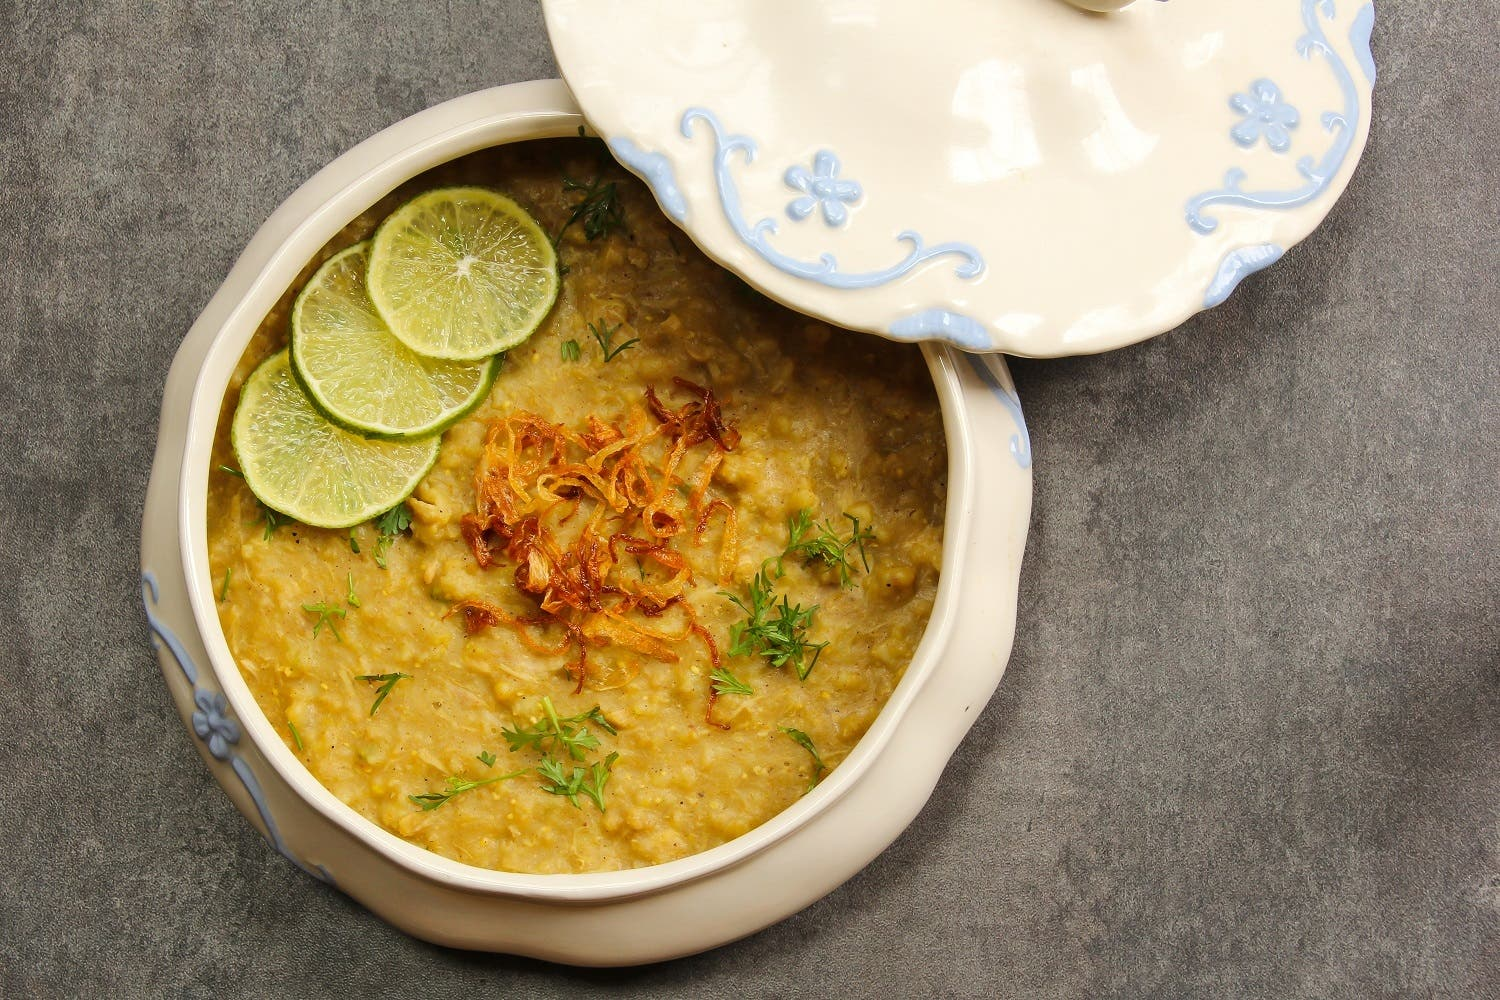 Haleem is a stew composed of meat, lentils and pounded wheat made into a thick paste. It is originally an Arabic dish and was introduced to the Hyderabad State by the Chaush people during the rule of the Nizams. (Shutterstock)